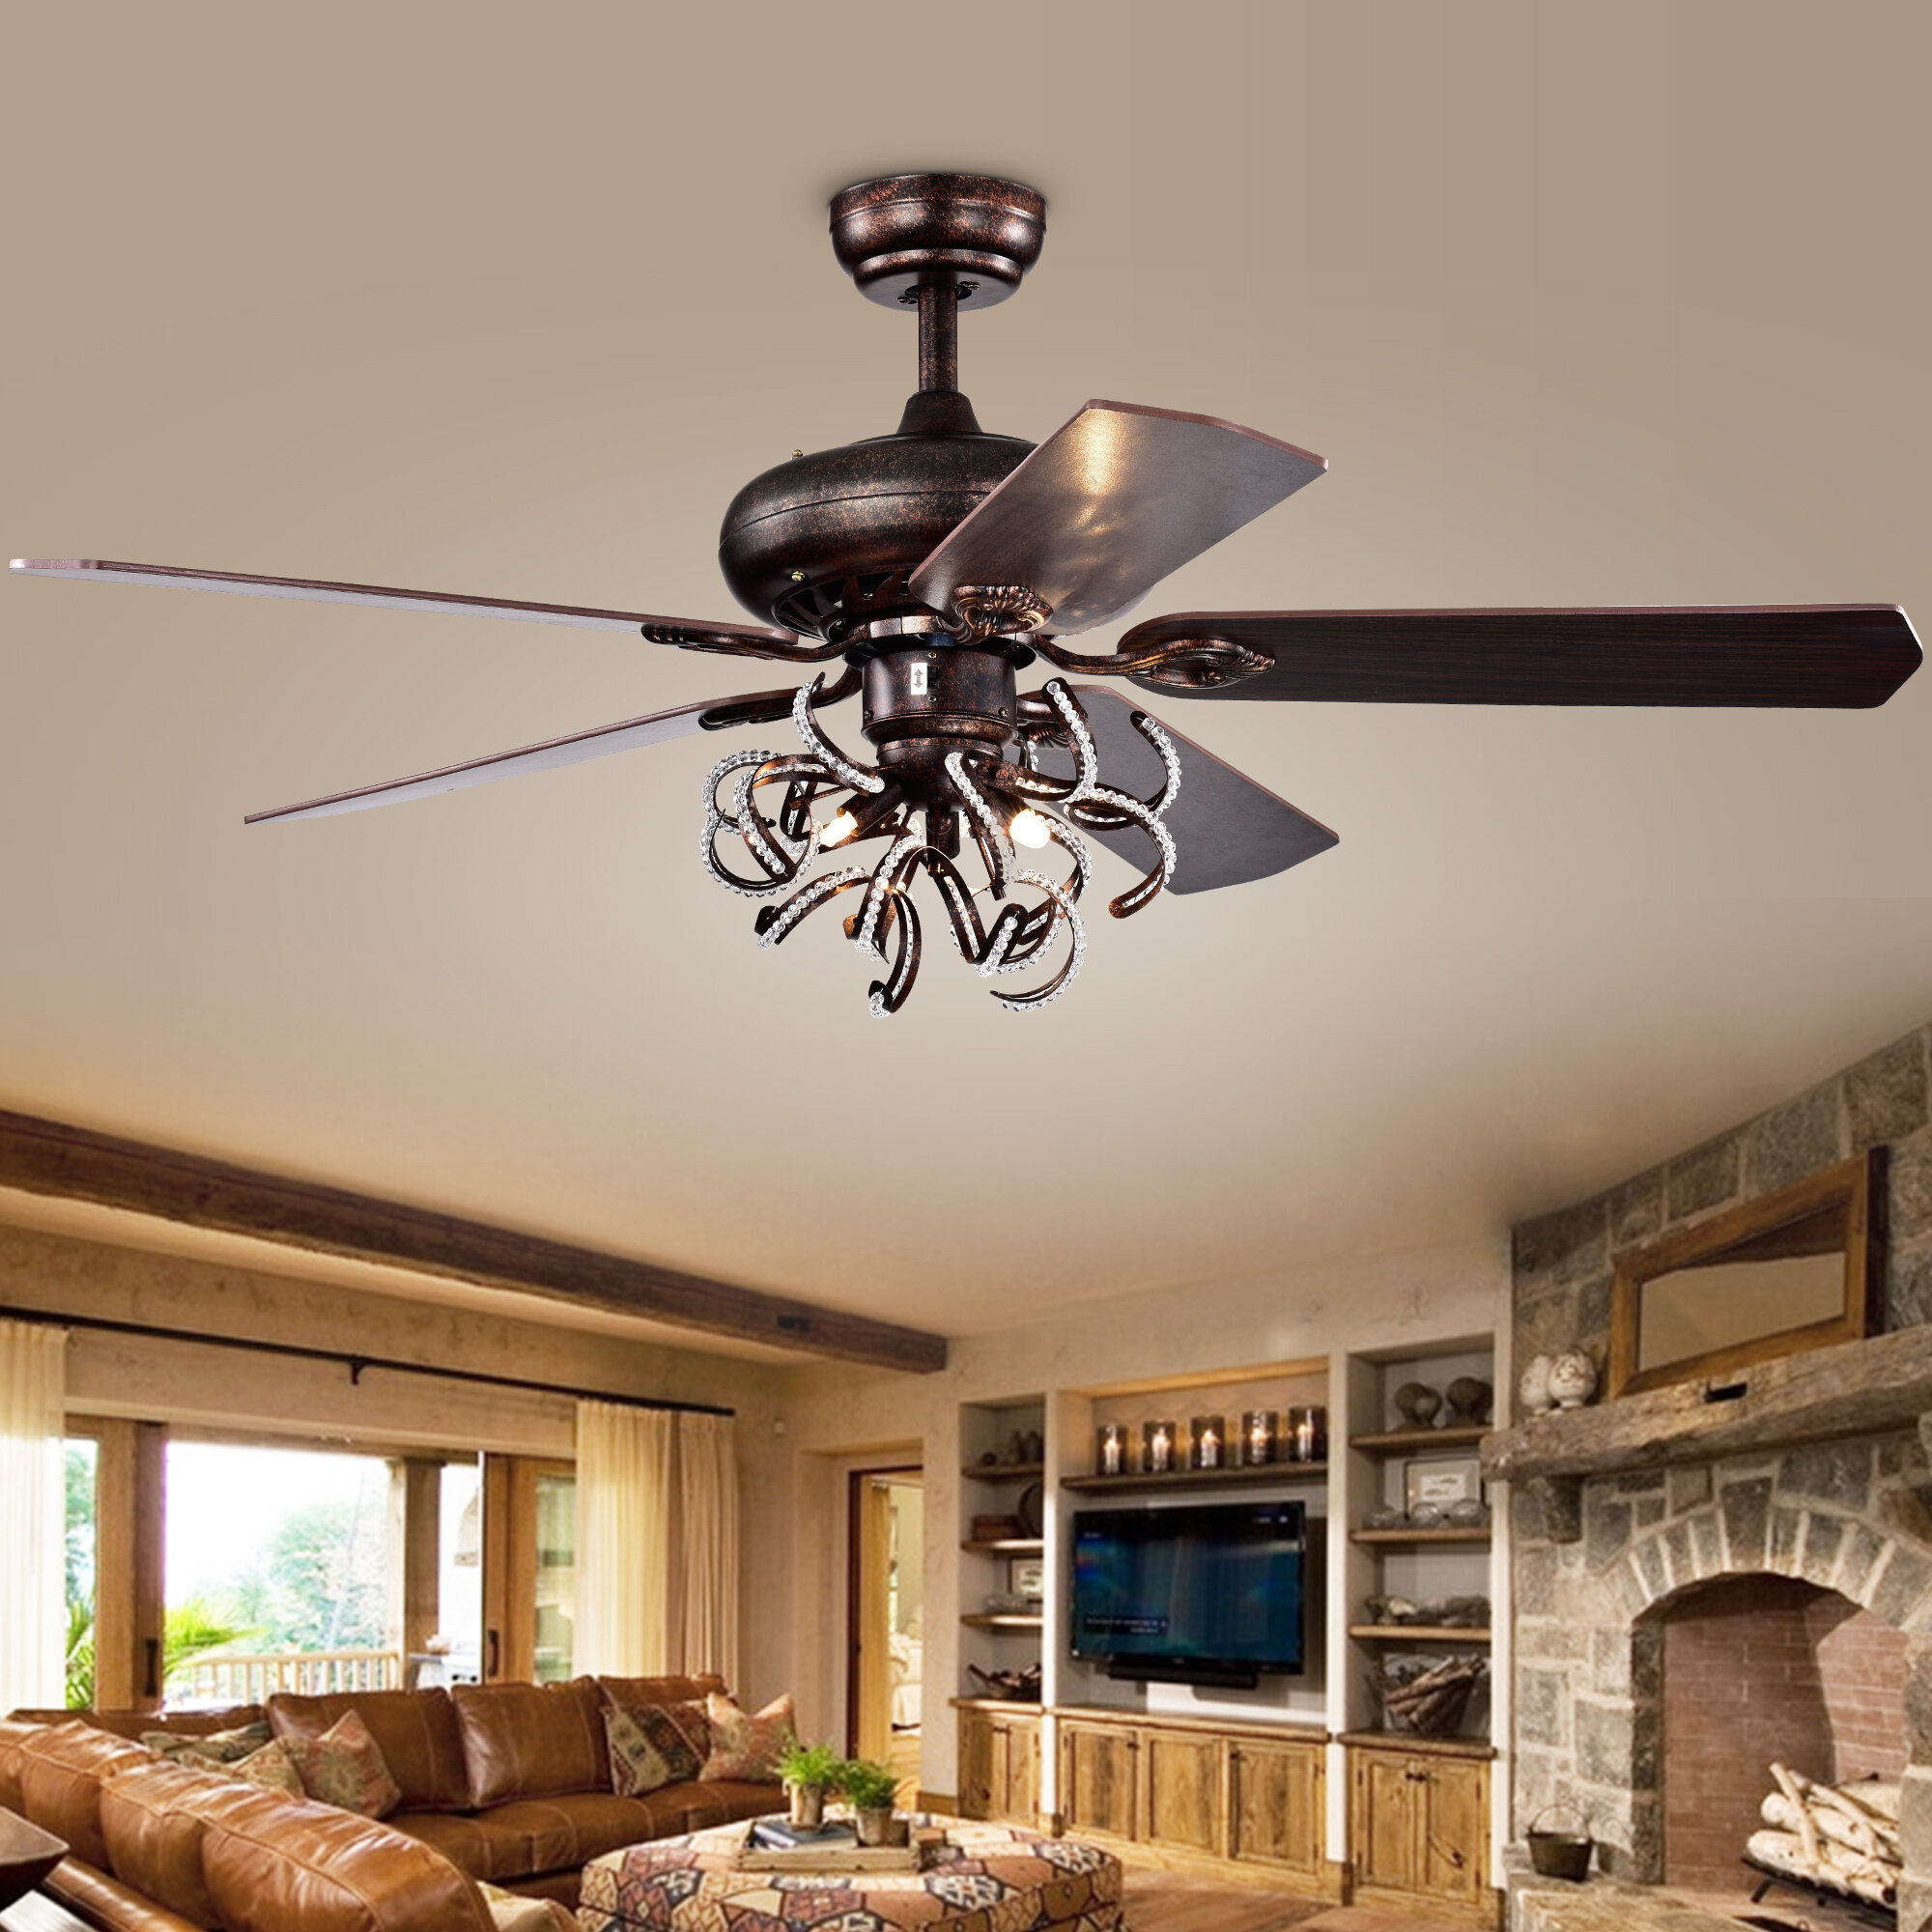 Rosdorf Park Christiansen 5 Blade Crystal Ceiling Fan With Remote Control And Light Kit Included Reviews